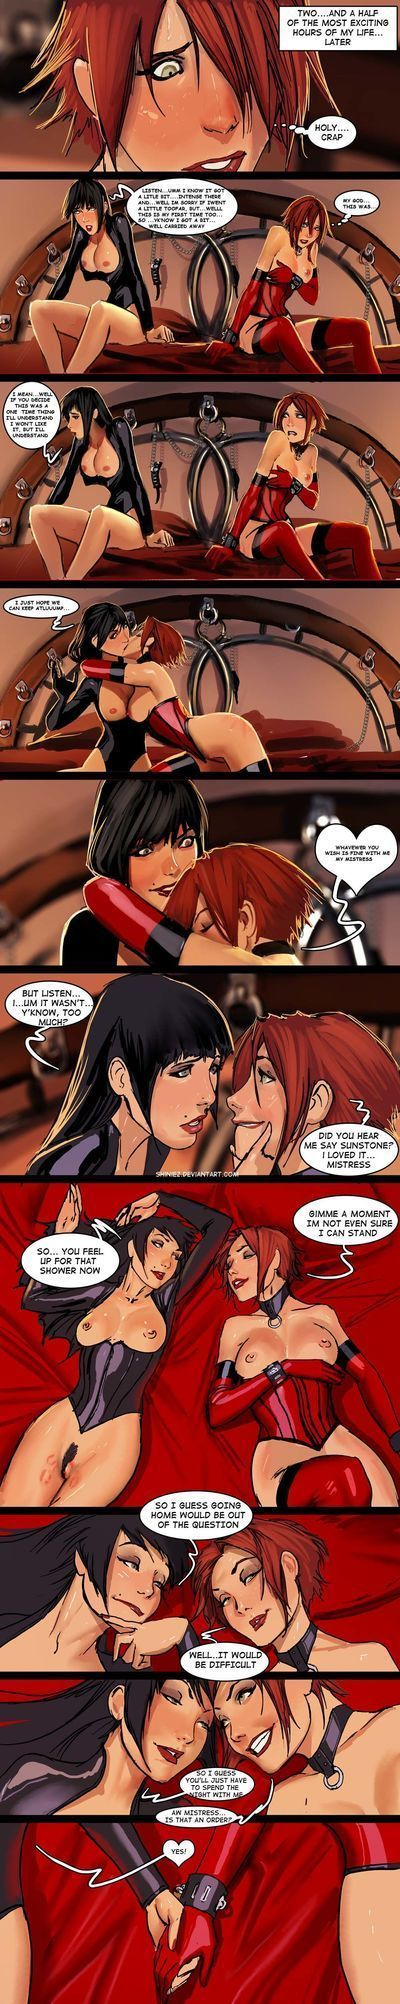 [Shiniez] Sunstone - Chapters 1-2-3-4-5(ongoing)